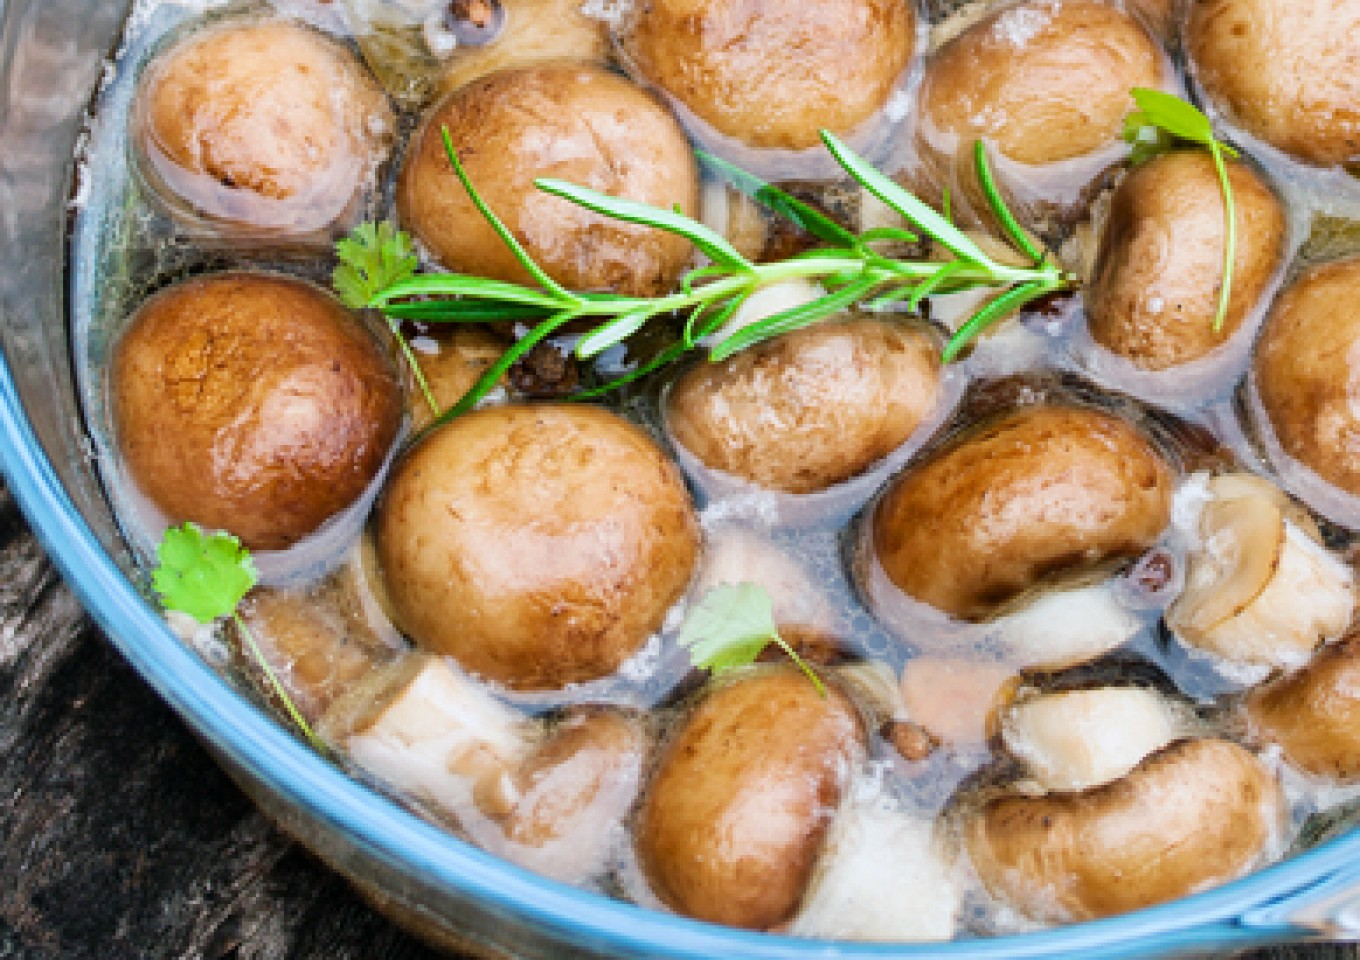 Basic Marinated Mushrooms